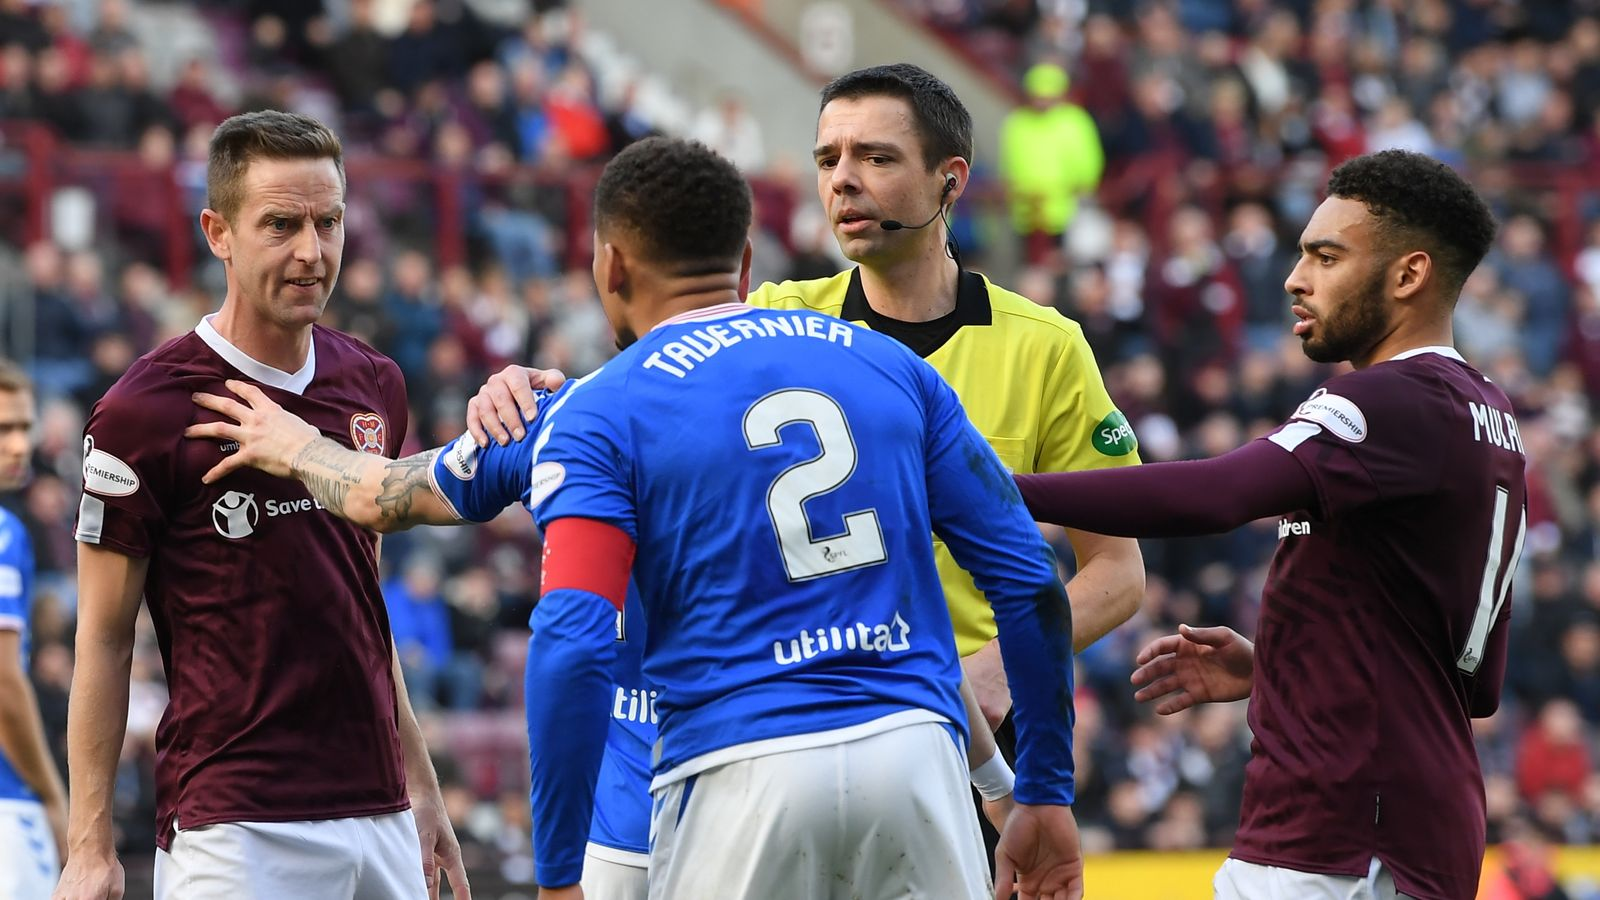 Hearts 1-1 Rangers: Steven Gerrard's side miss out on chance to go top